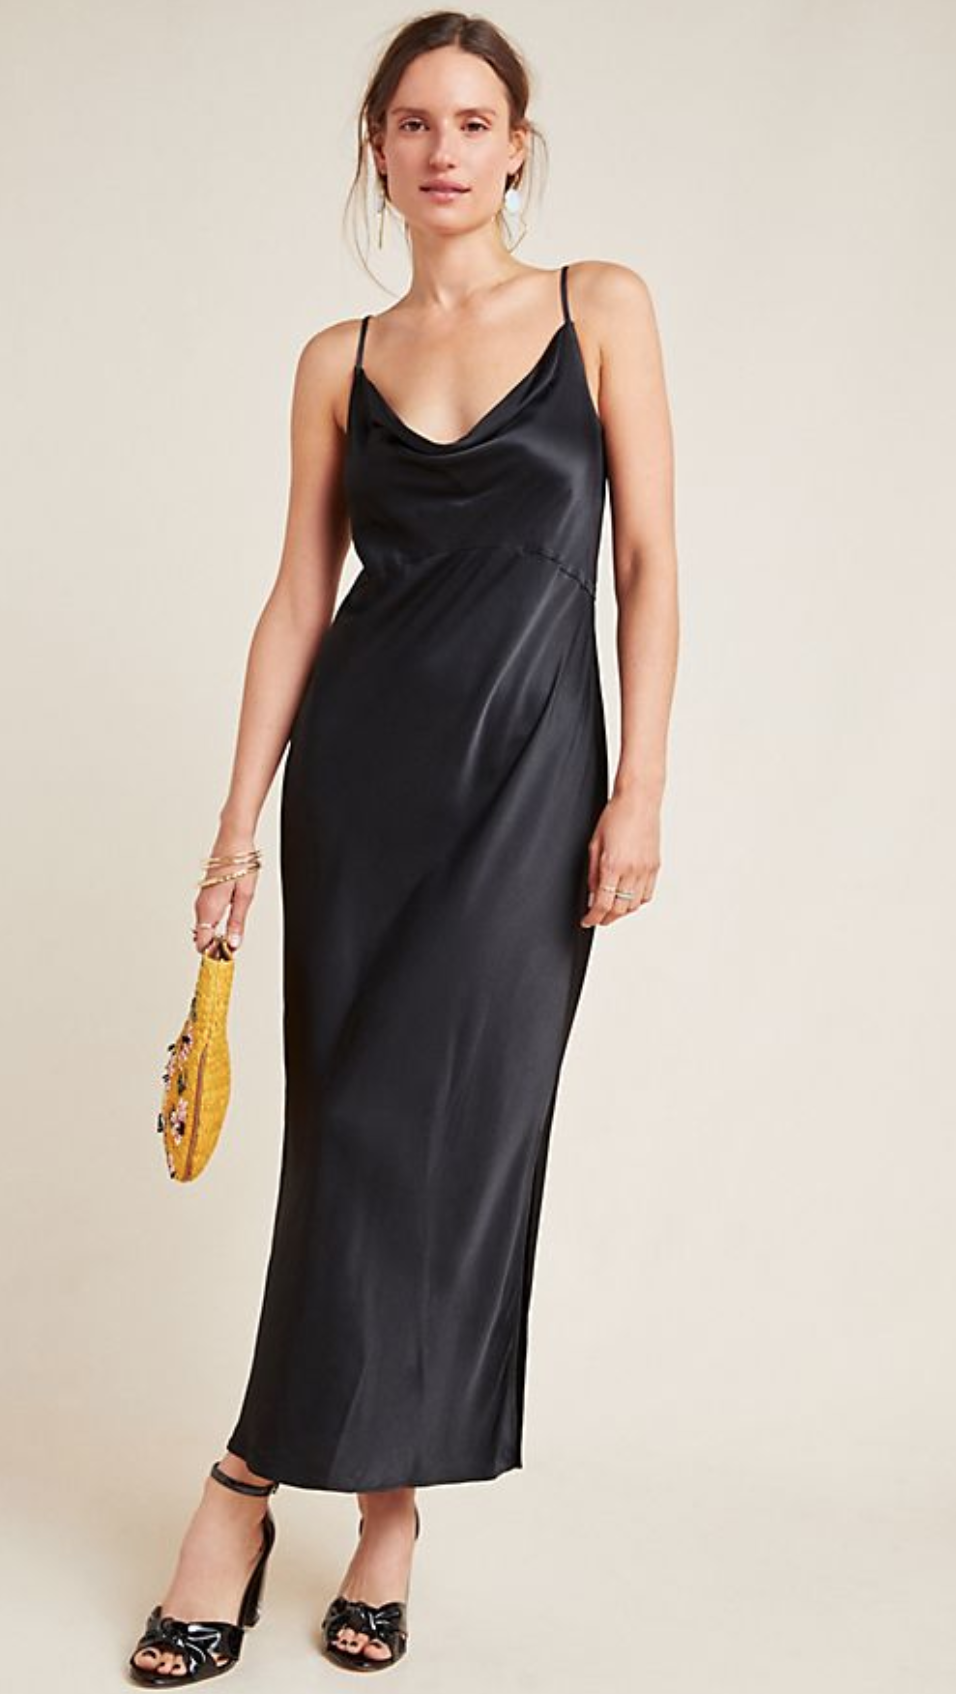 "<br><br><strong>Anthropologie</strong> Bias Slip Dress, $, available at <a href=""https://go.skimresources.com/?id=30283X879131&url=https%3A%2F%2Fwww.anthropologie.com%2Fshop%2Fbias-slip-dress2"" rel=""nofollow noopener"" target=""_blank"" data-ylk=""slk:Anthropologie"" class=""link rapid-noclick-resp"">Anthropologie</a>"